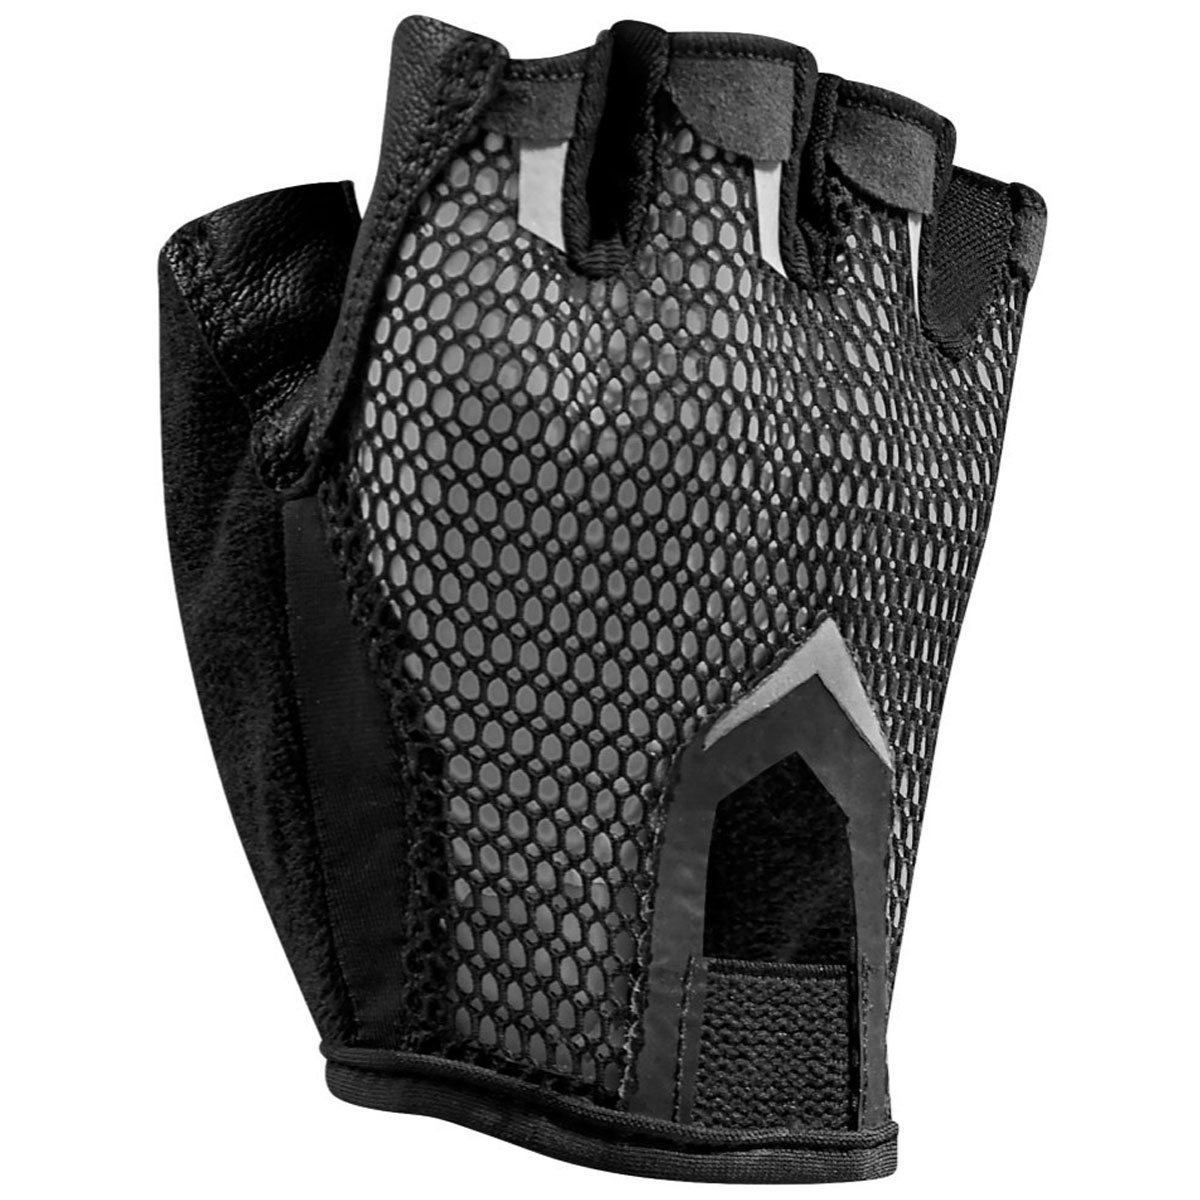 Under Armour Crossfit Gloves: Under Armour 2017 Womens UA Resistor Training Gym Weight